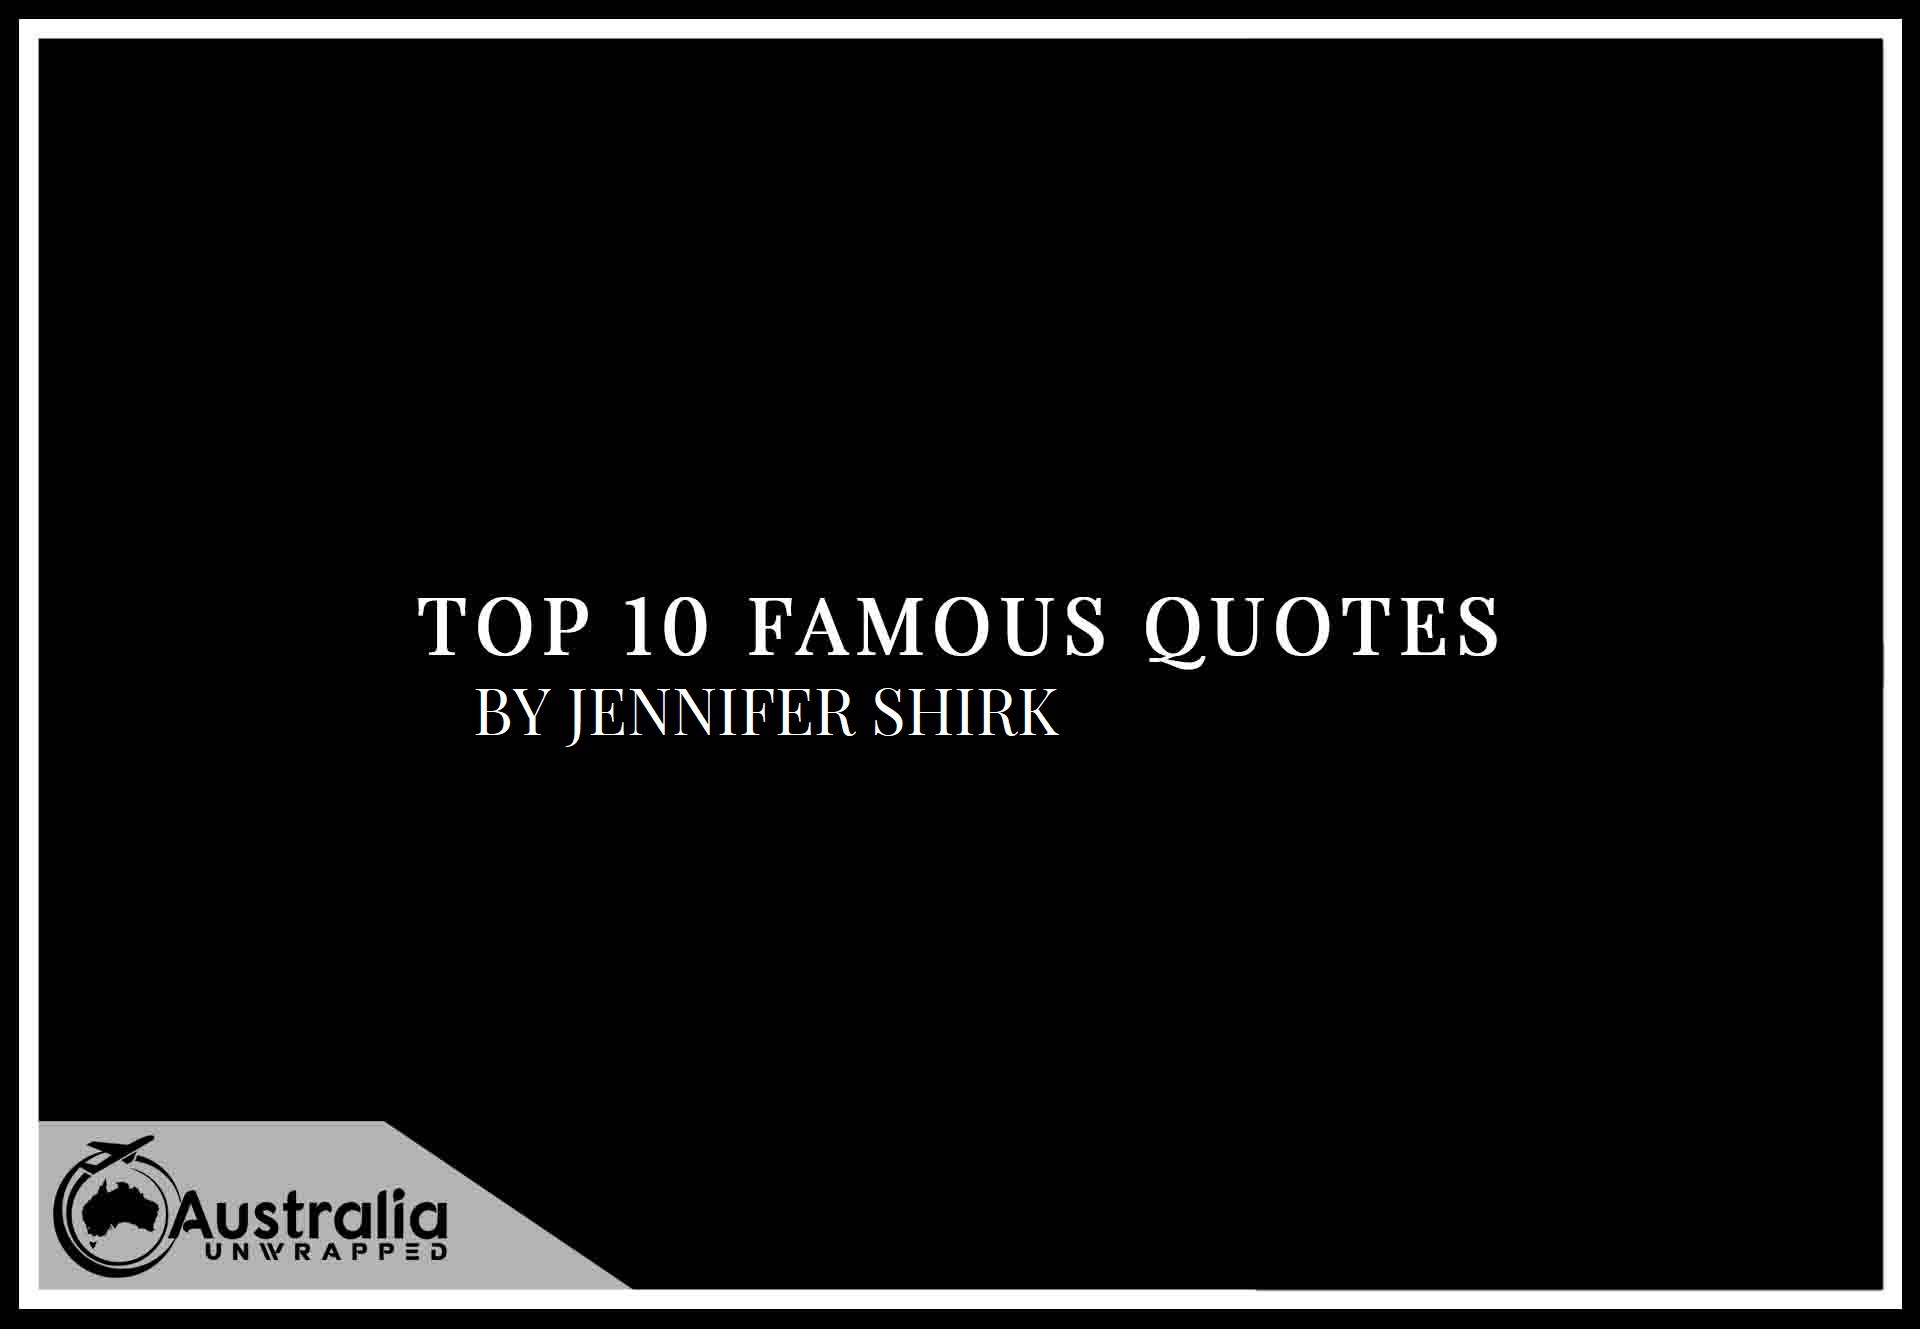 Top 10 Famous Quotes by Author Jennifer Shirk